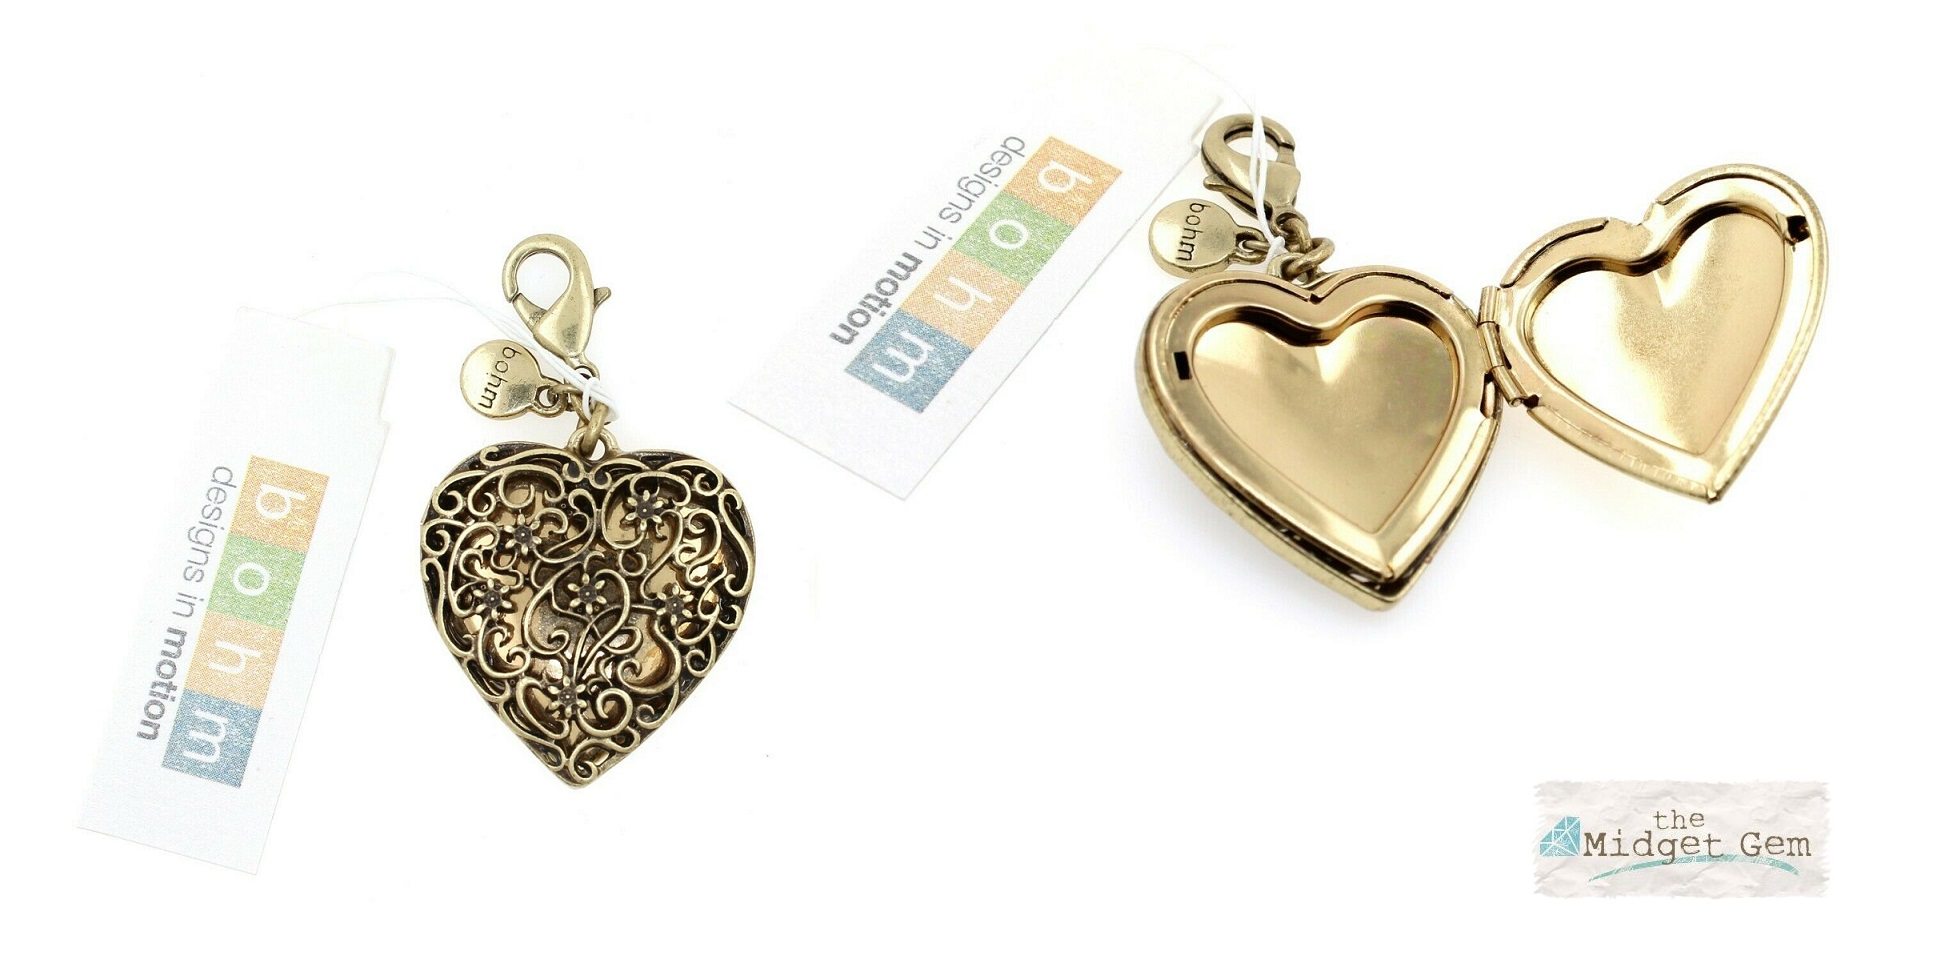 The Bohm - Summer Lovin' - 3 cm Heart Locket - Gold Plate BNWT